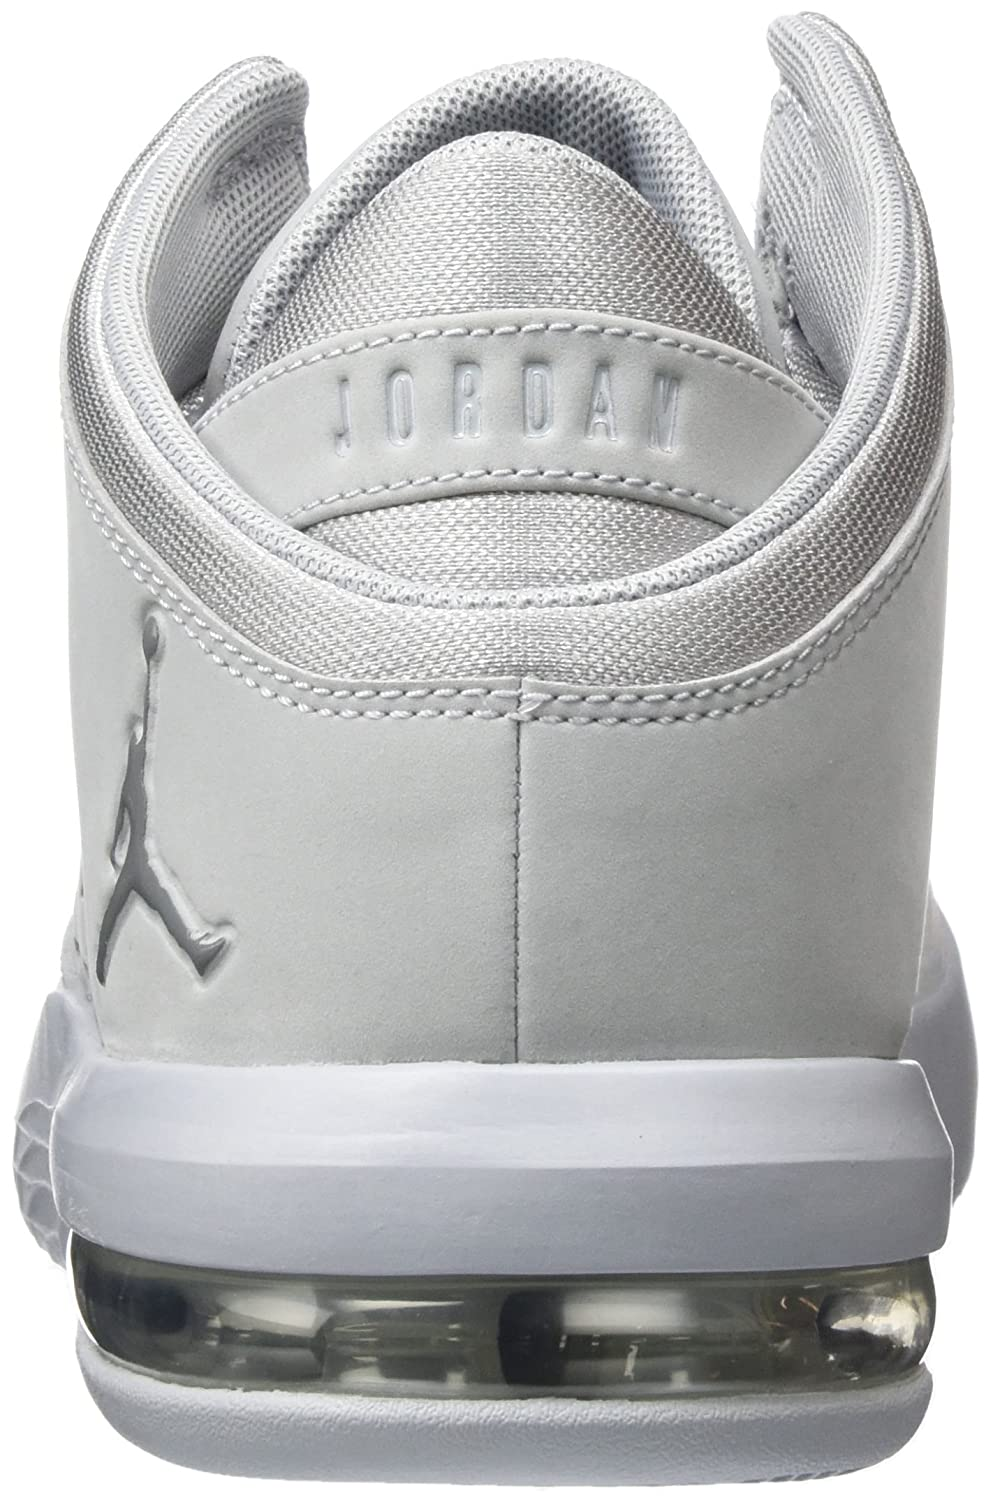 Amazon.com: Nike Girls Toddler SMS Roadrunner Running Shoes 9C Iced Lavender/White-Light Thstl: Shoes